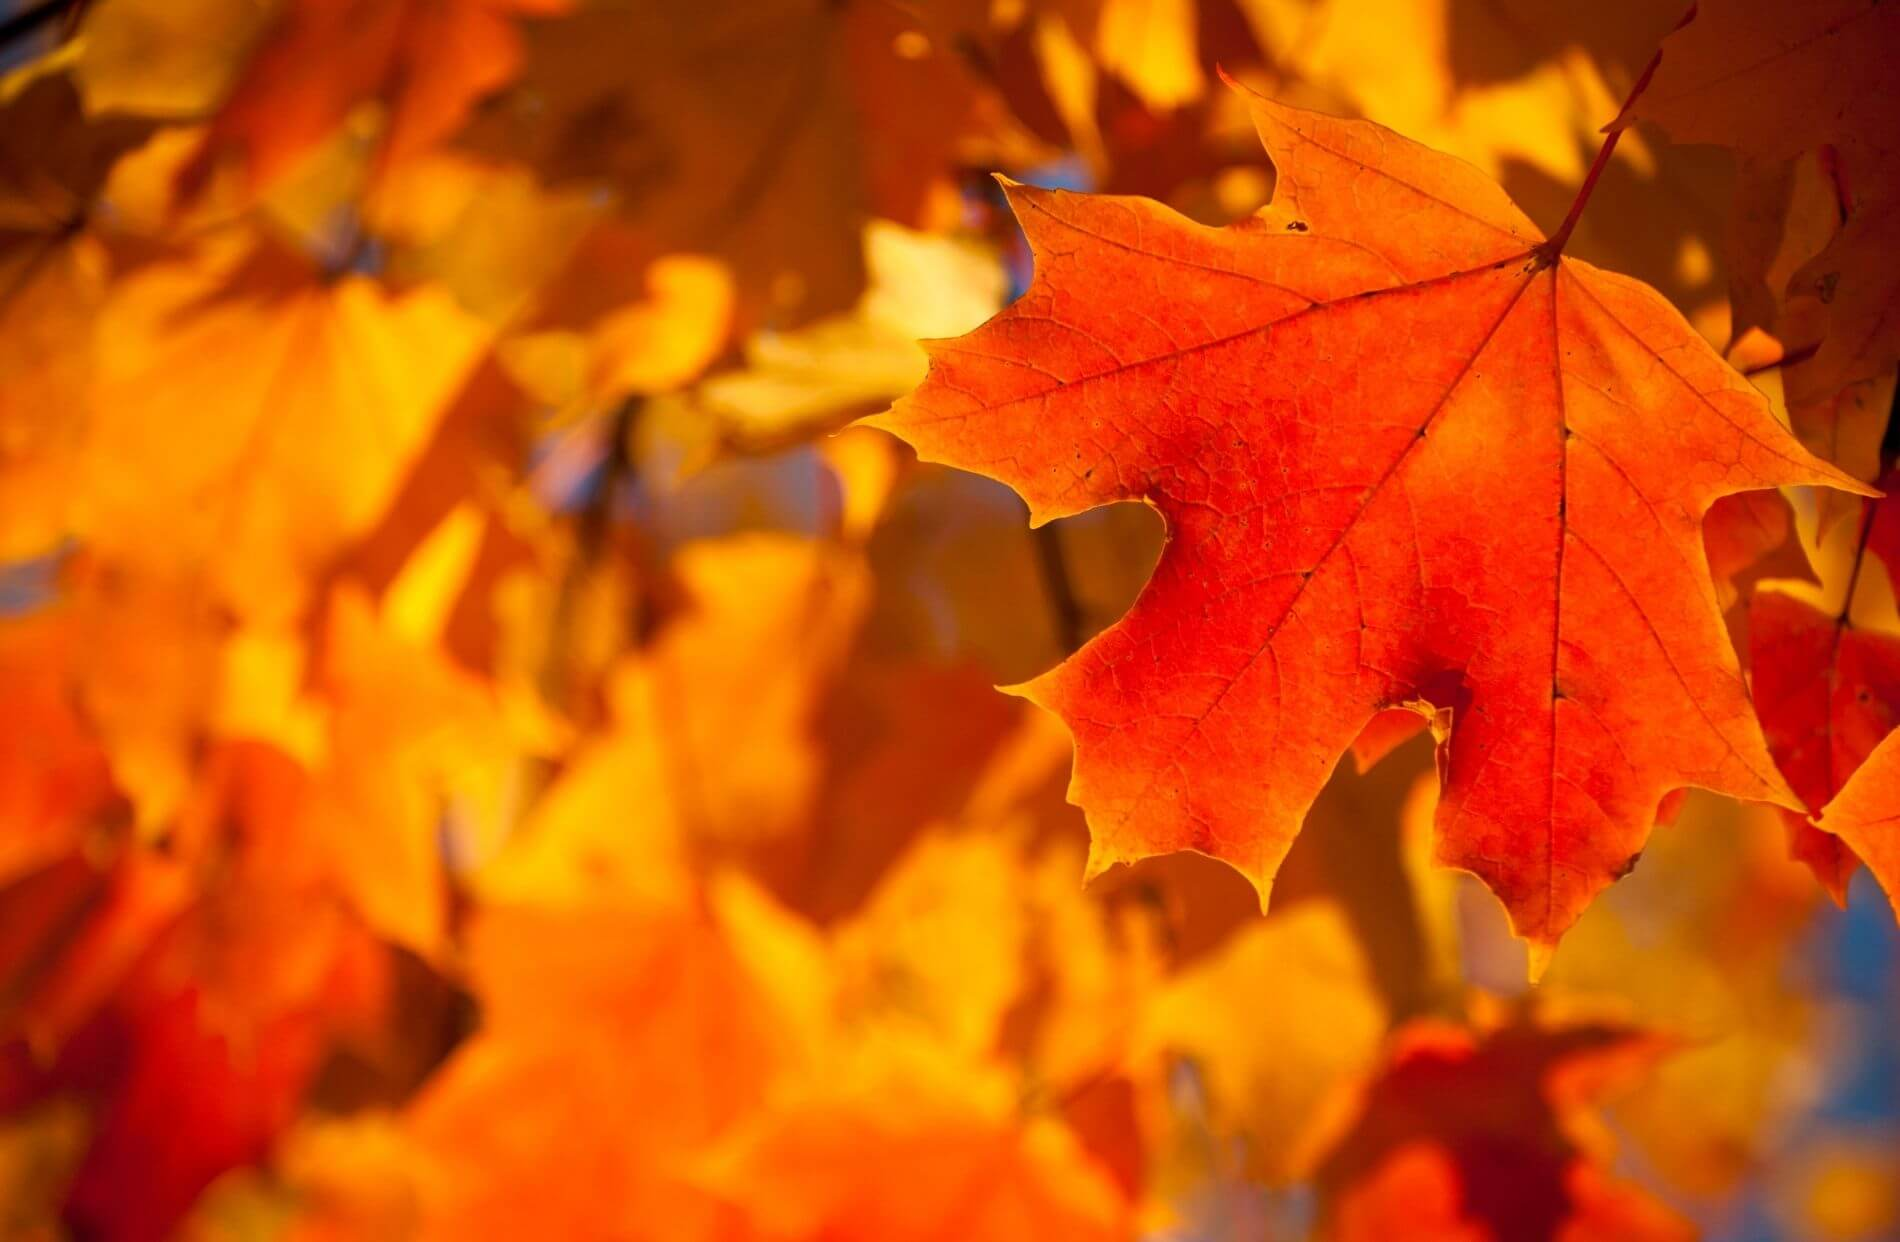 orange, red and gold leaves hanging on tree during fall season